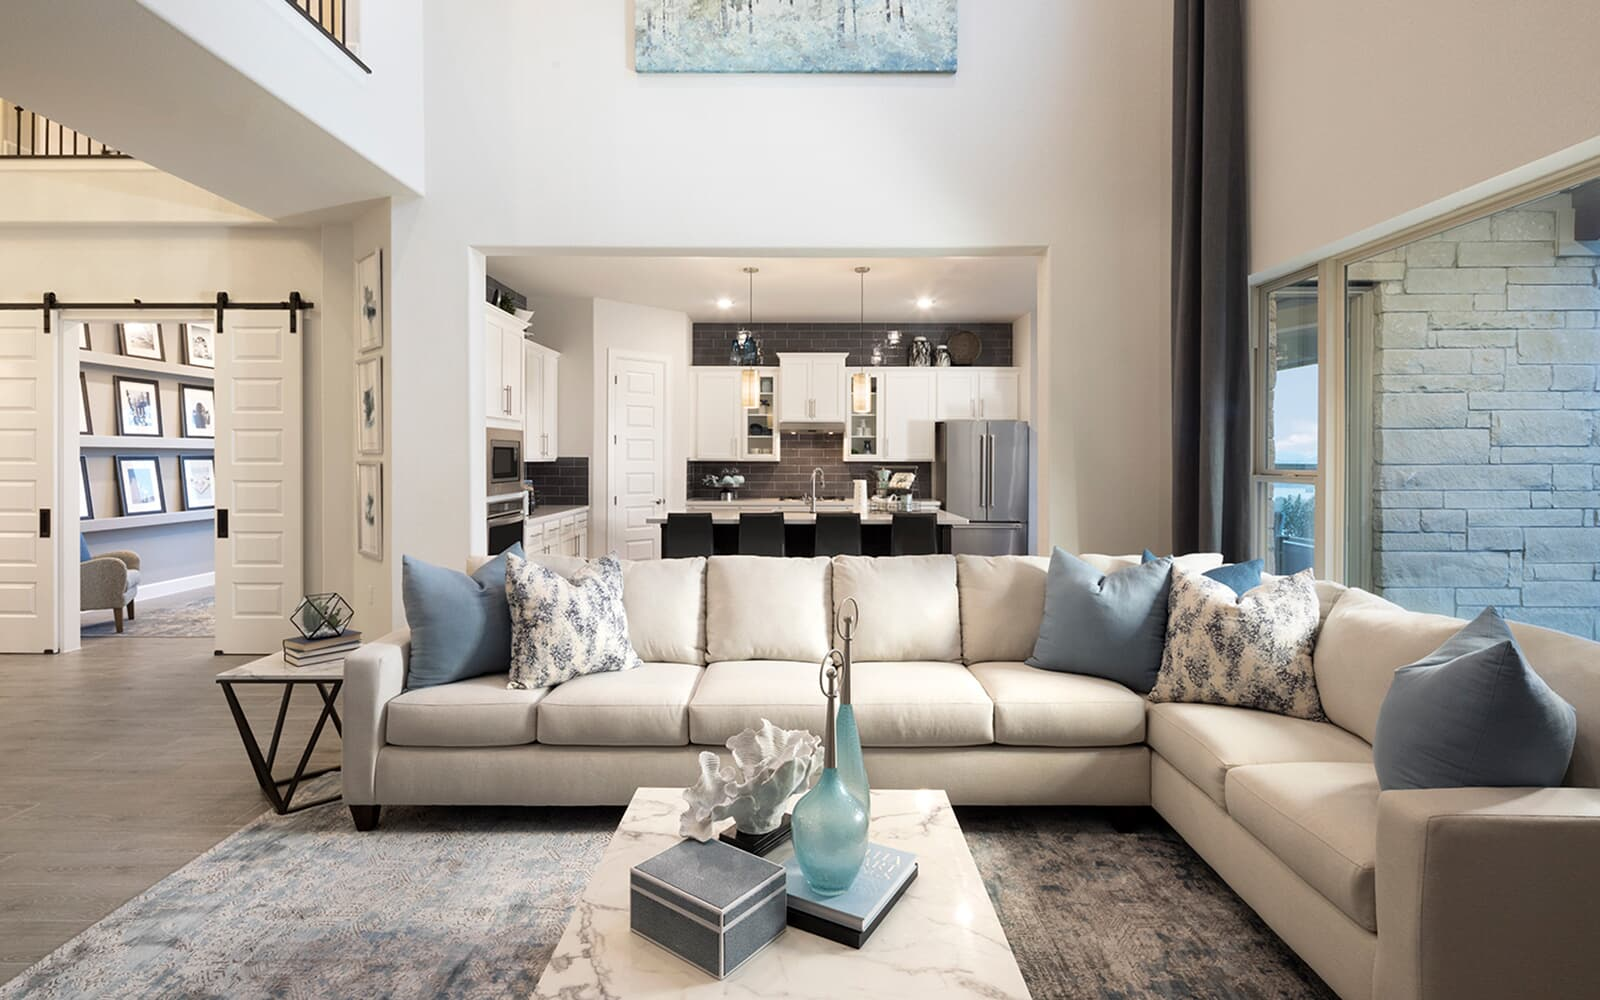 living-room-arroyo-divide-at-rough-hollow-lakeway-texas